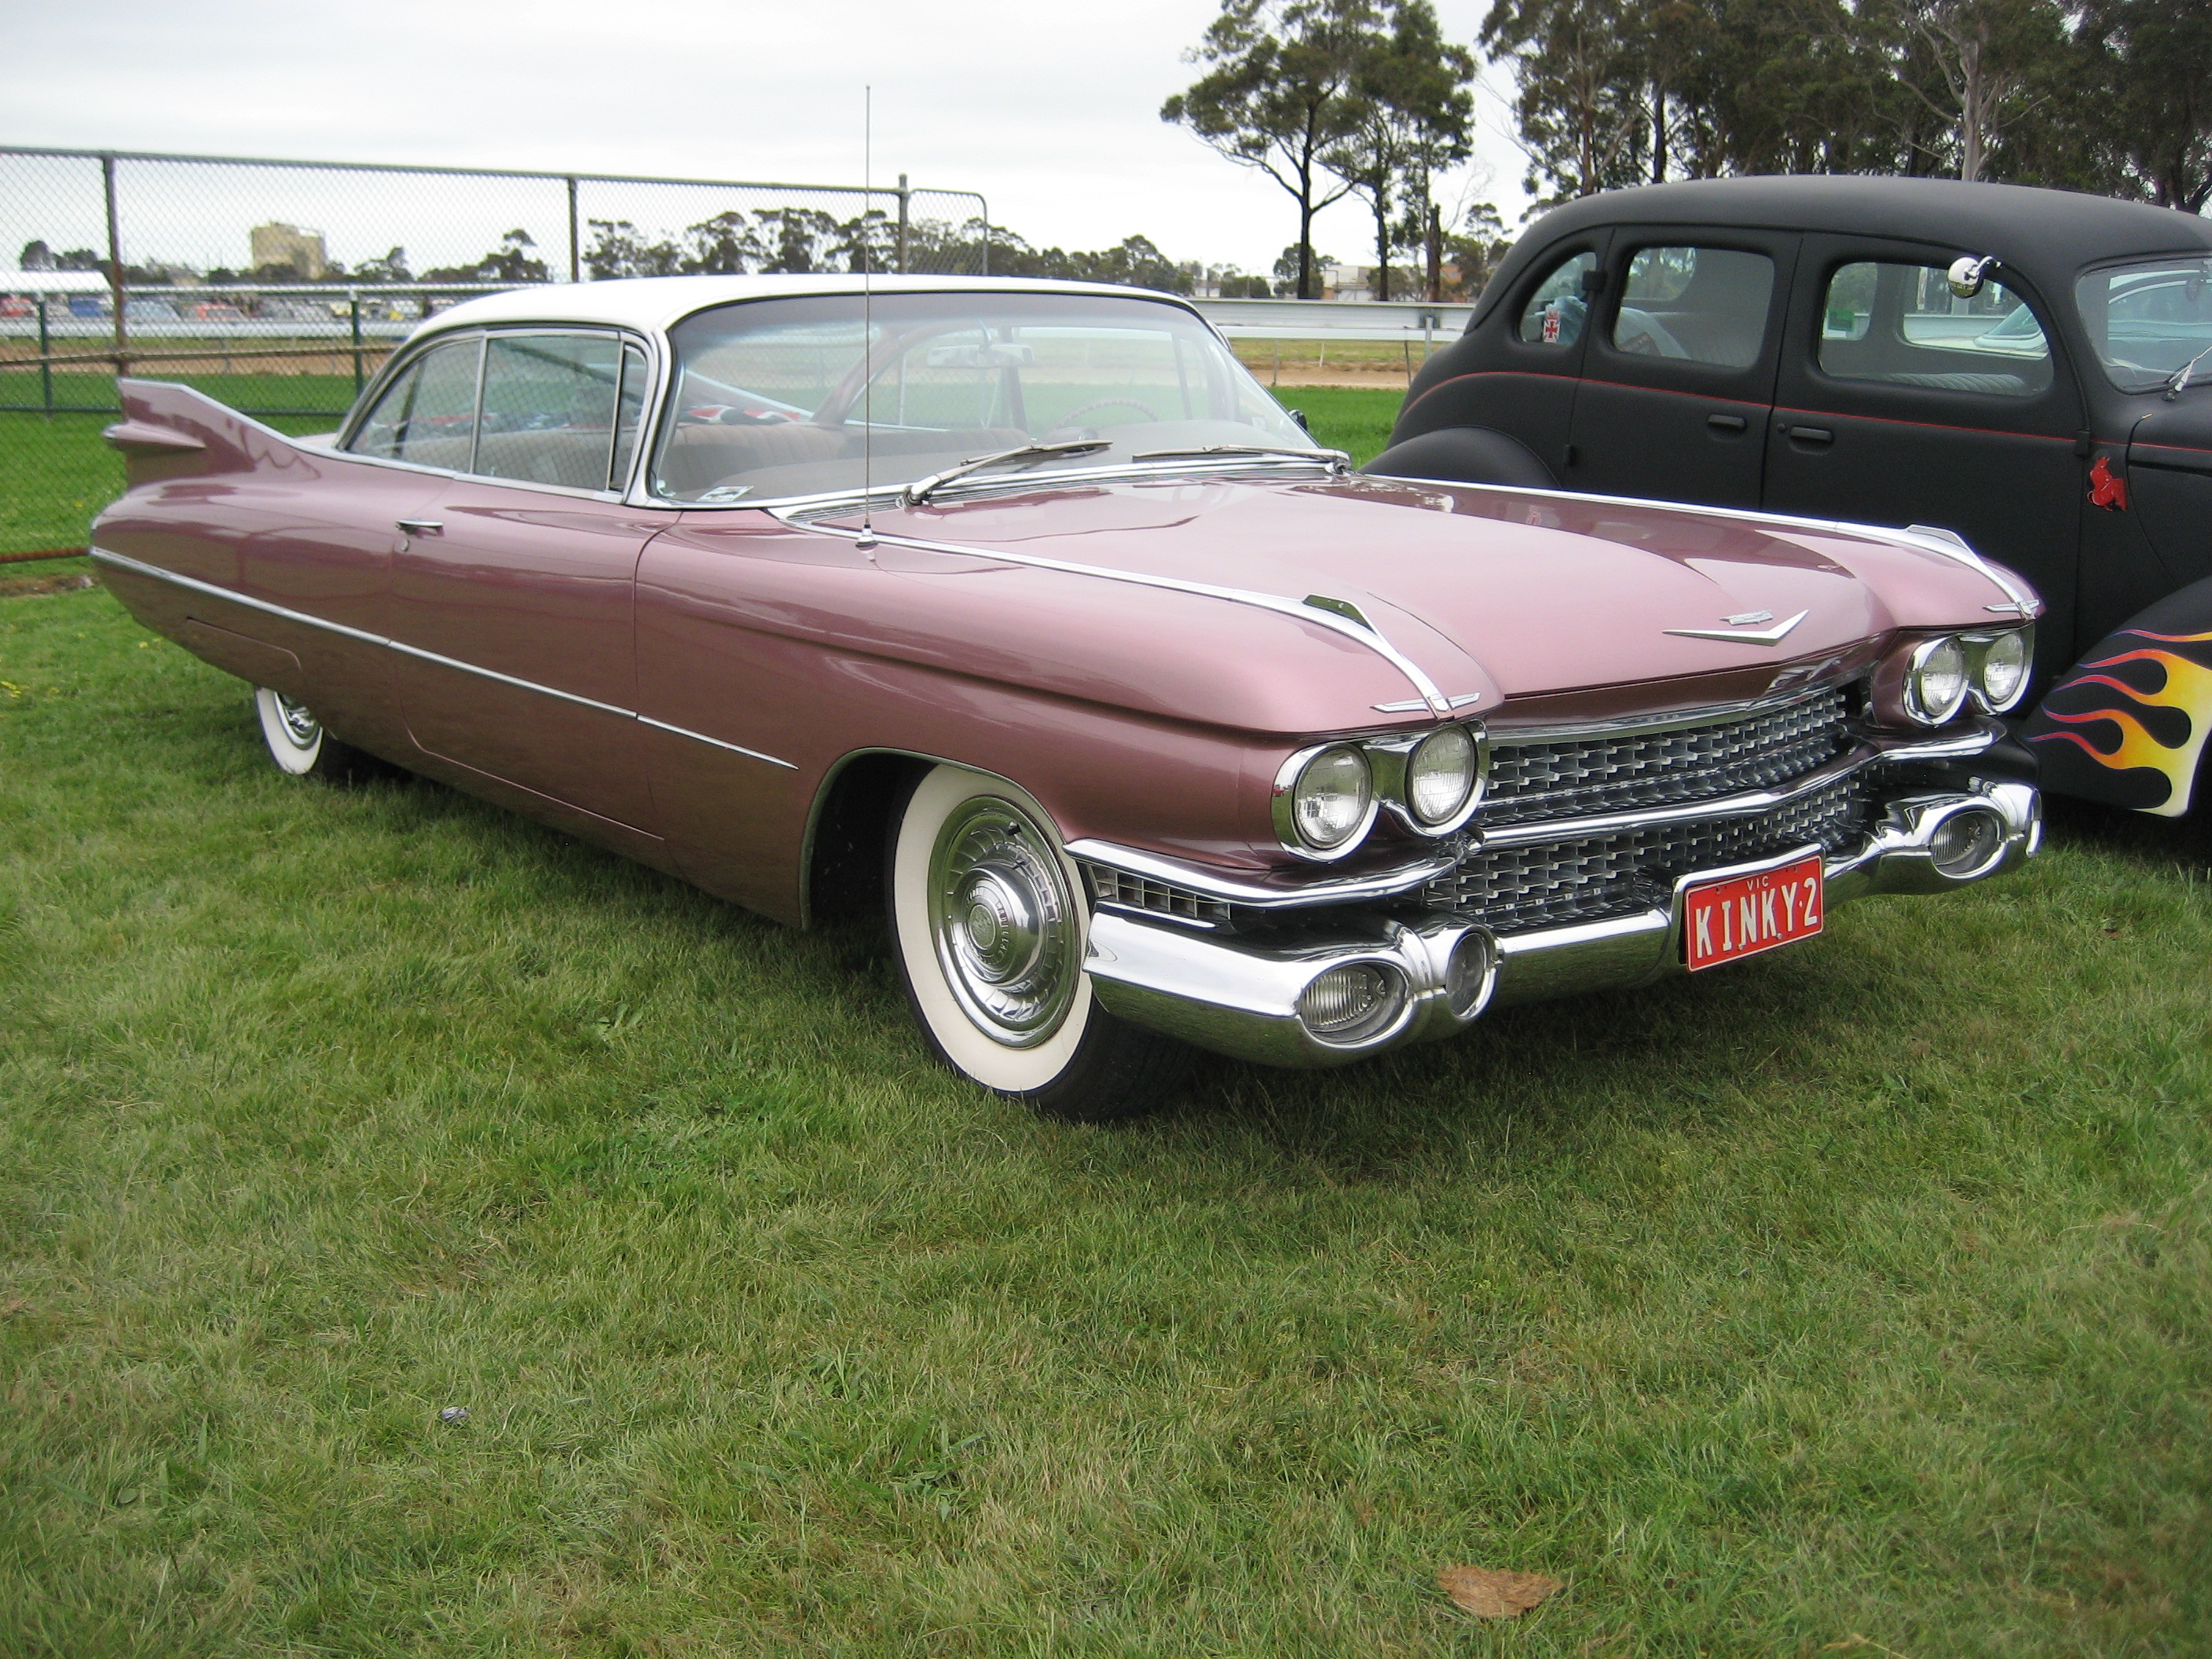 1959_Cadillac_Coupe_deVille.jpg